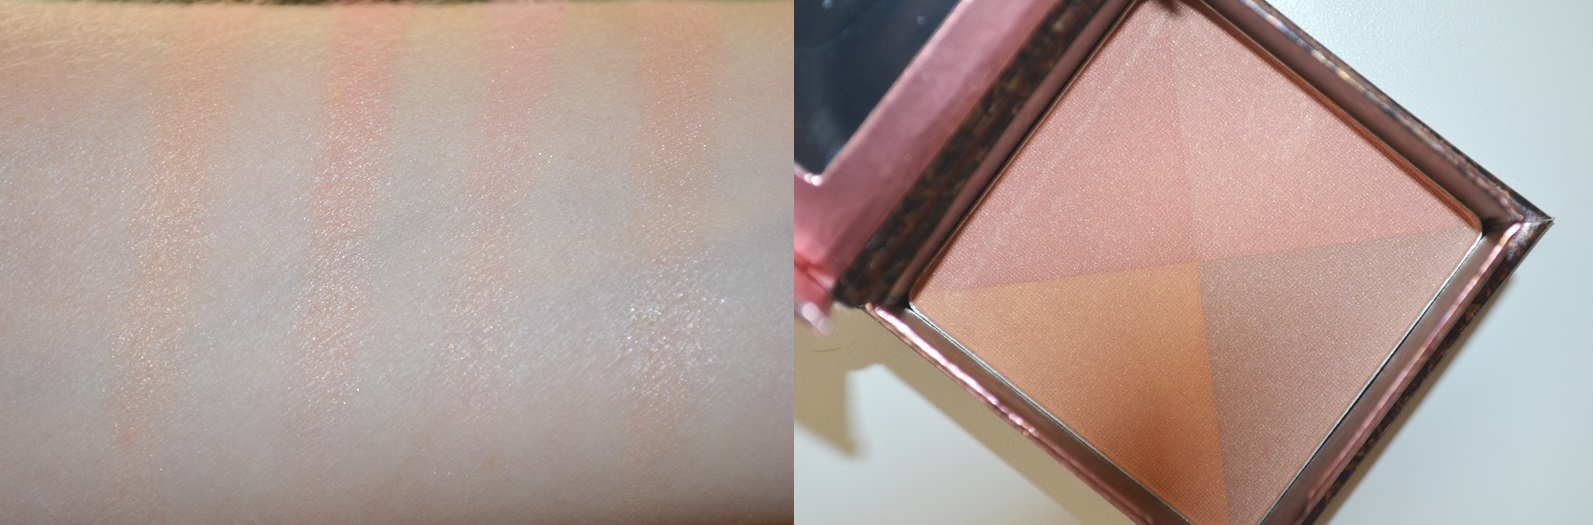 Compilatie 2 - New in! Benefit Sugarbomb Blush/Highlighter - Review